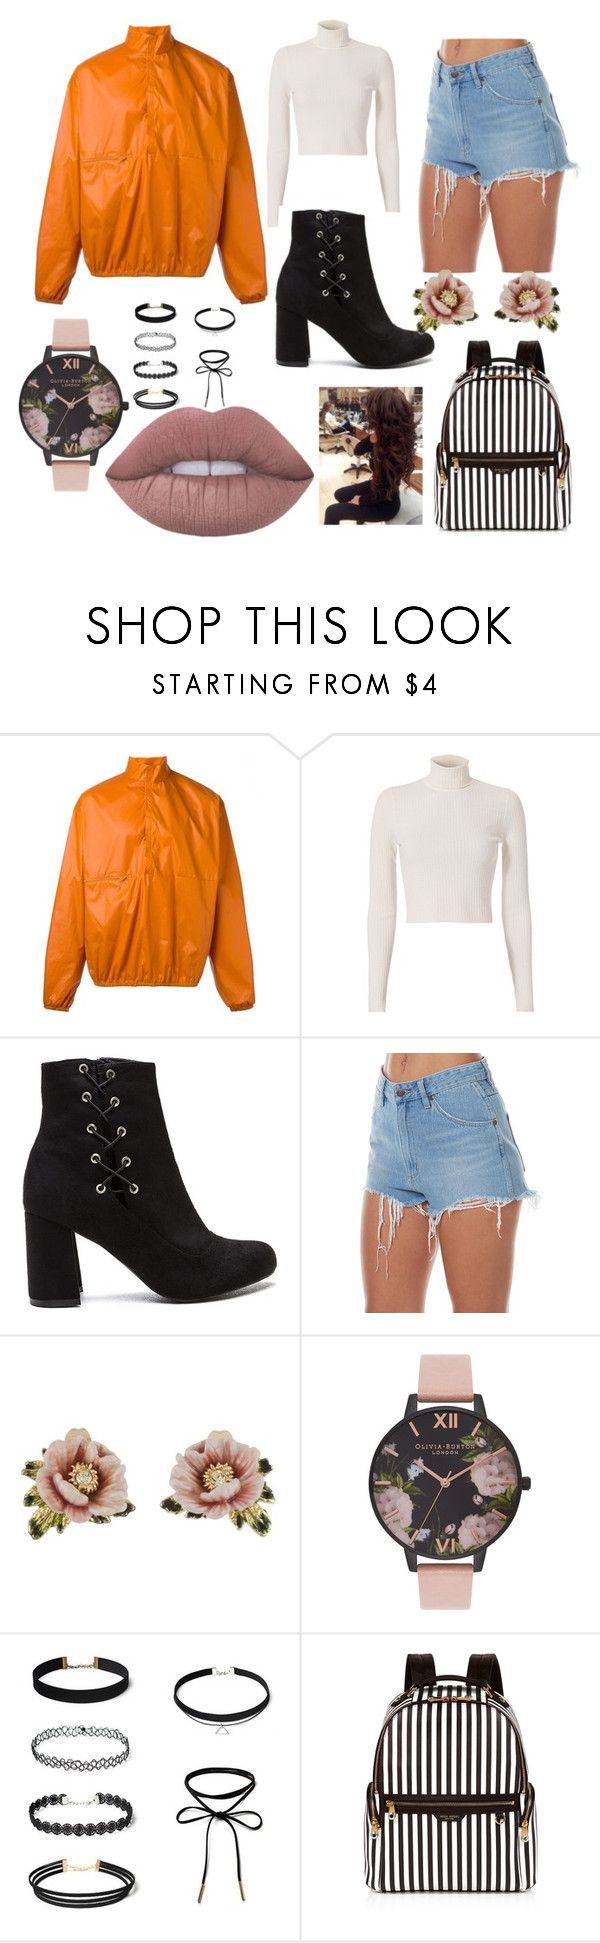 """""""Day Play"""" by terrelljaquanisha ❤ liked on Polyvore featuring Yeezy by Kanye West, A.L.C., Wrangler, Les Néréides, Olivia Burton and Henri Bendel"""